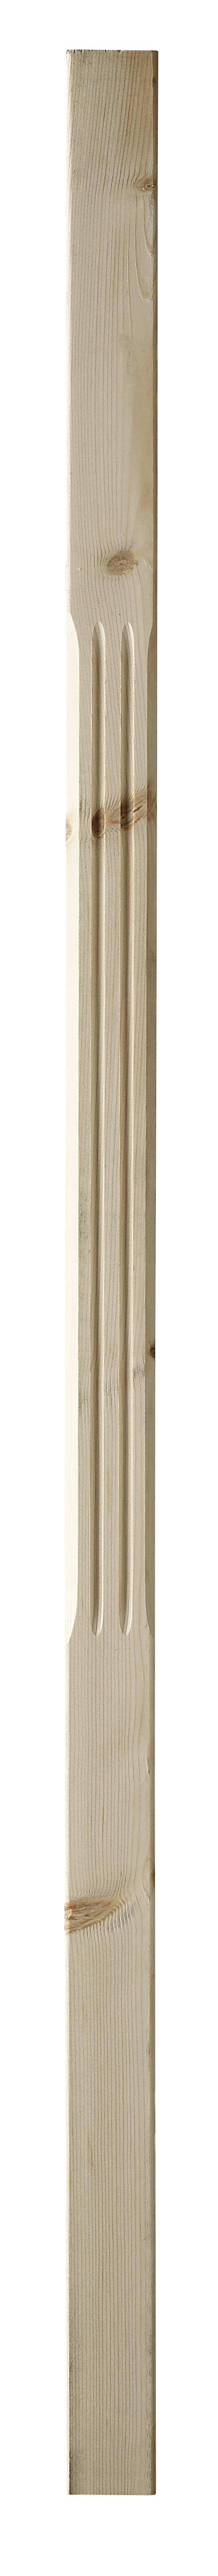 1 Pine Stop Chamfer Fluted Baluster 1100 41